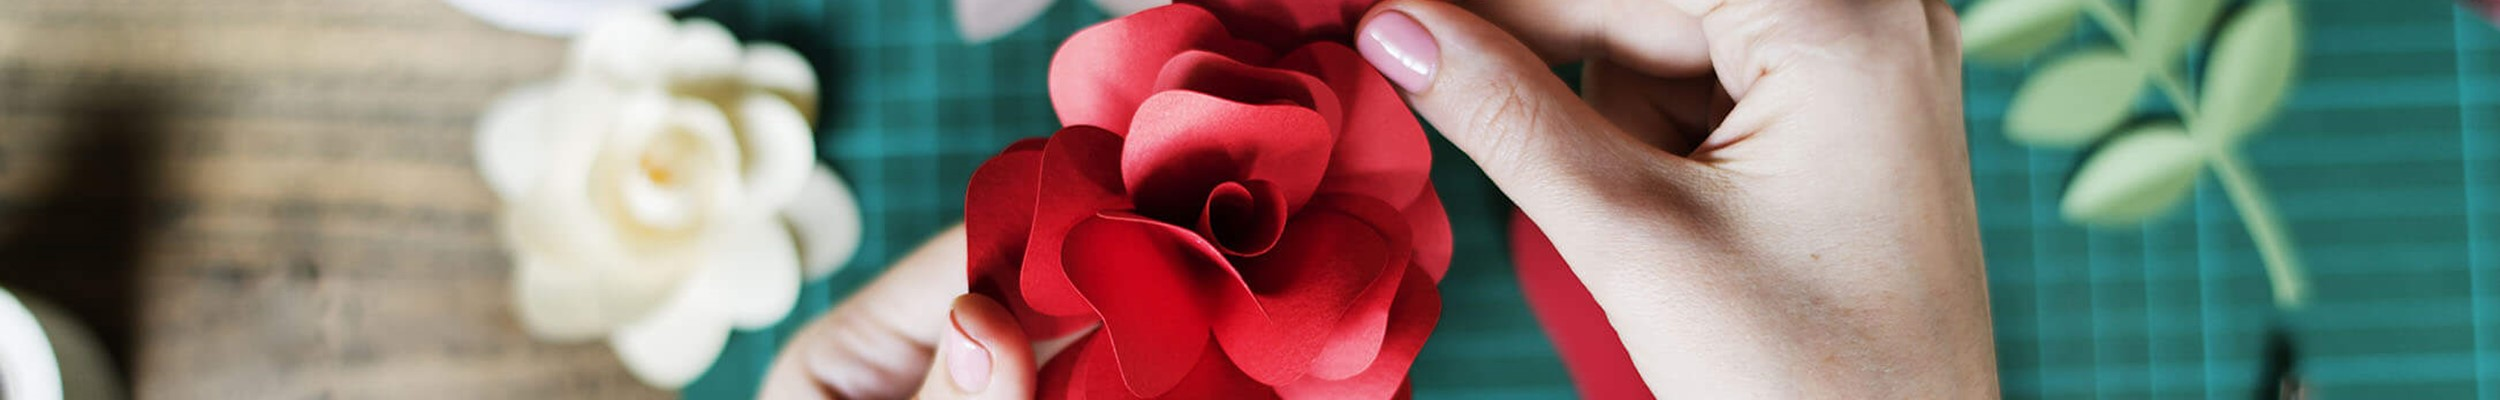 Crafting a red flower